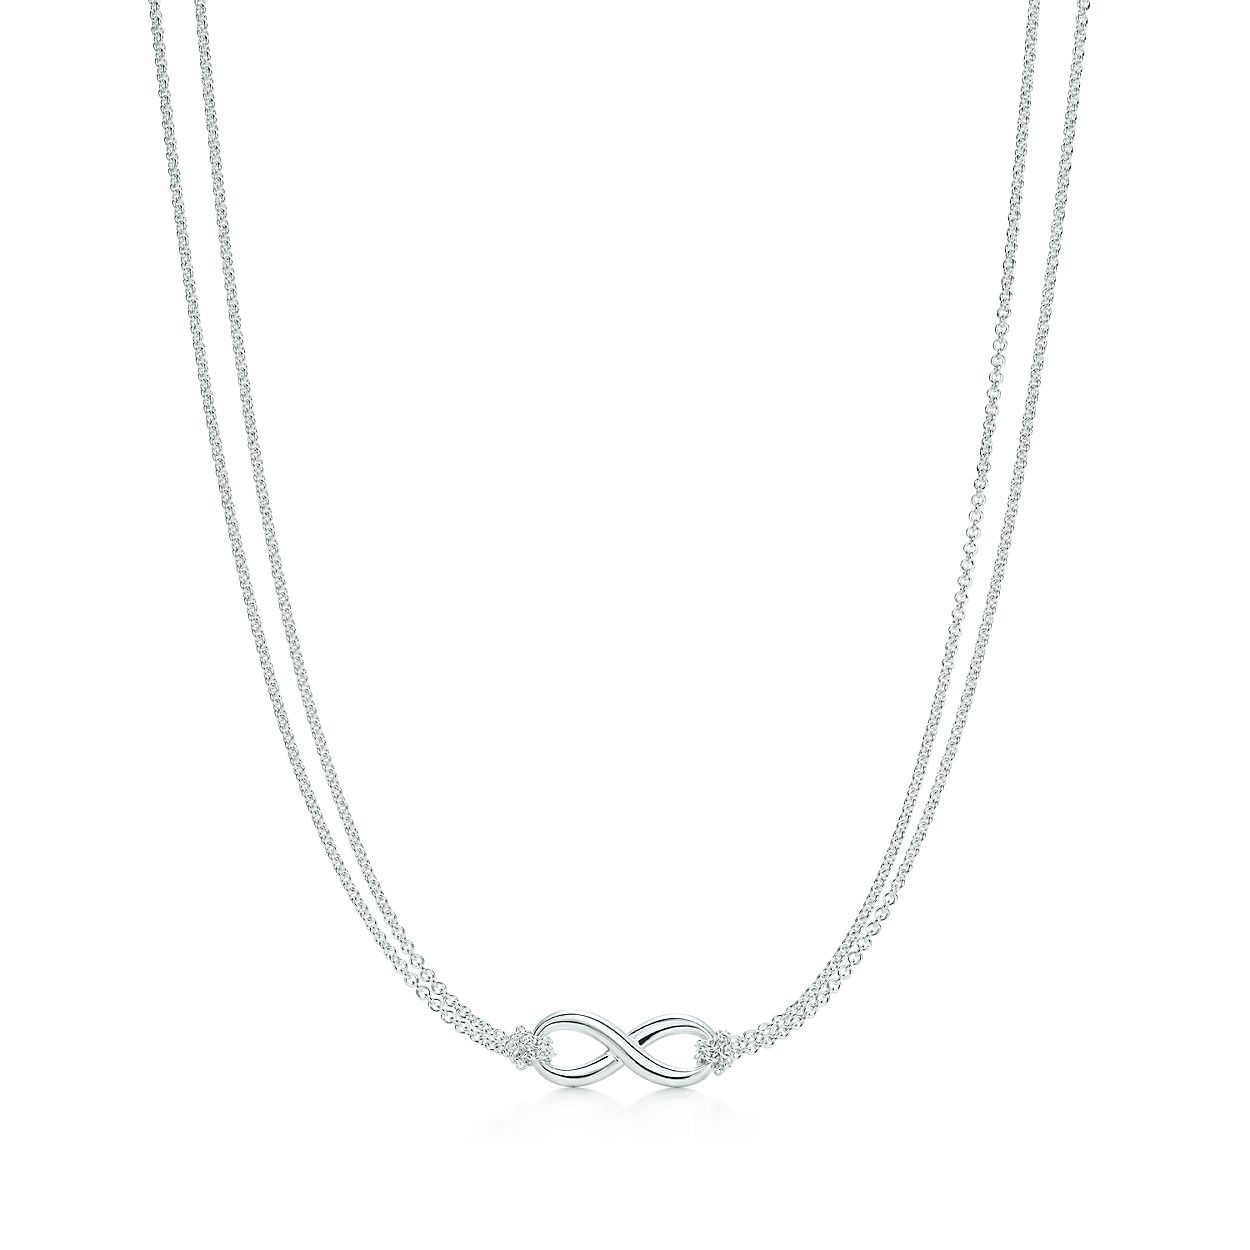 ed51bd603 Tiffany Infinity pendant in sterling silver on a 18